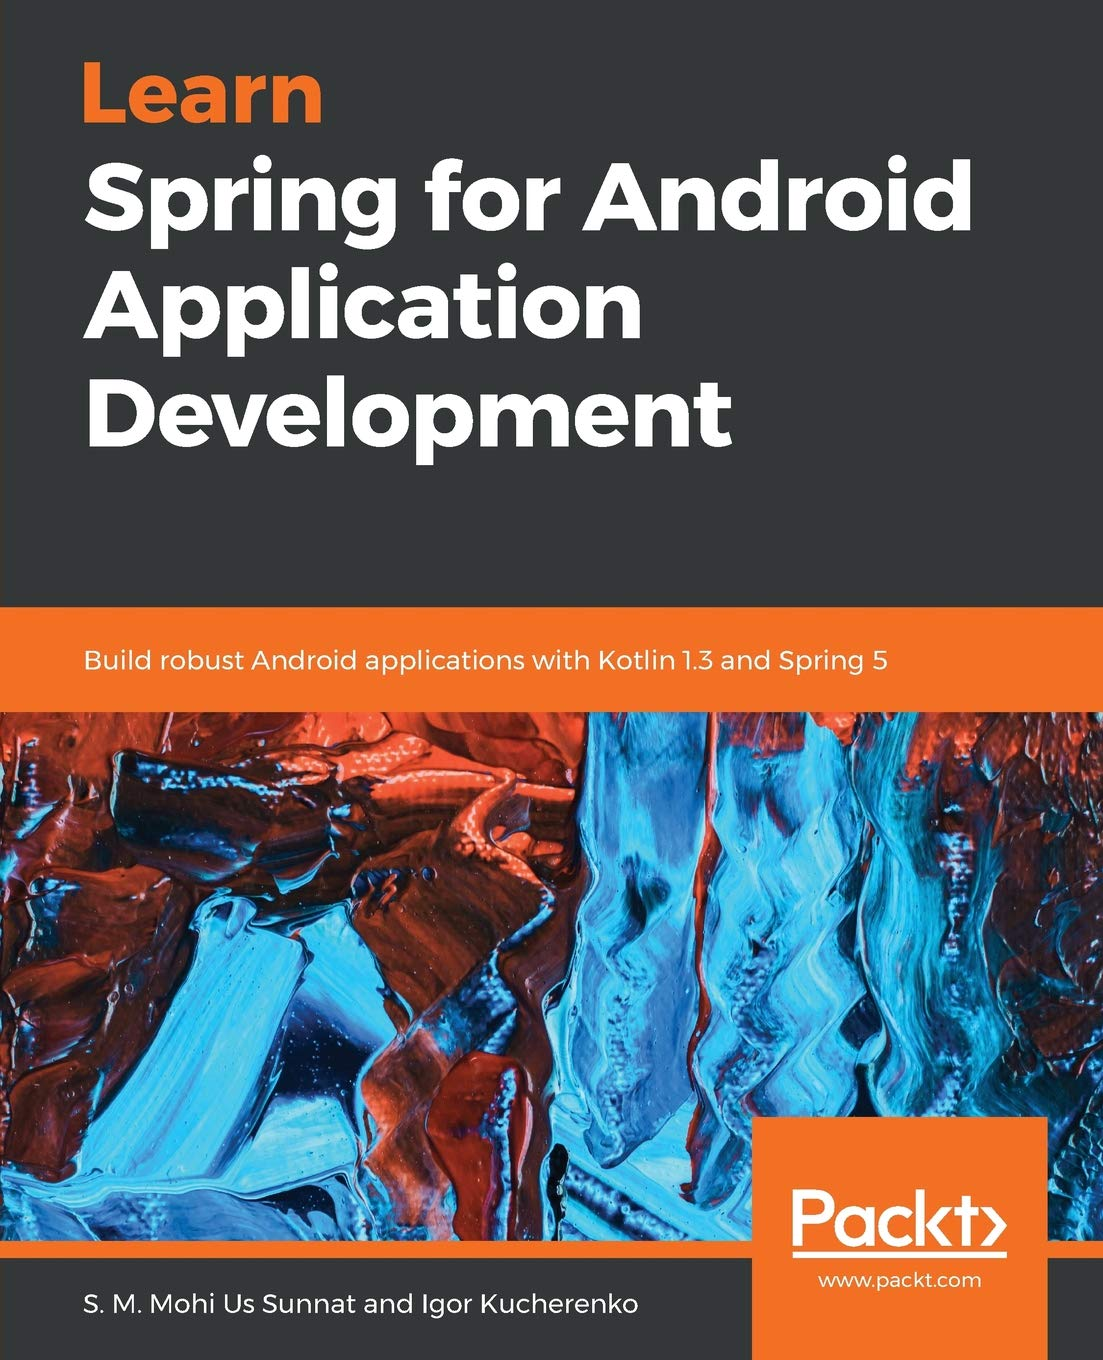 Learn Spring for Android Application Development: Build